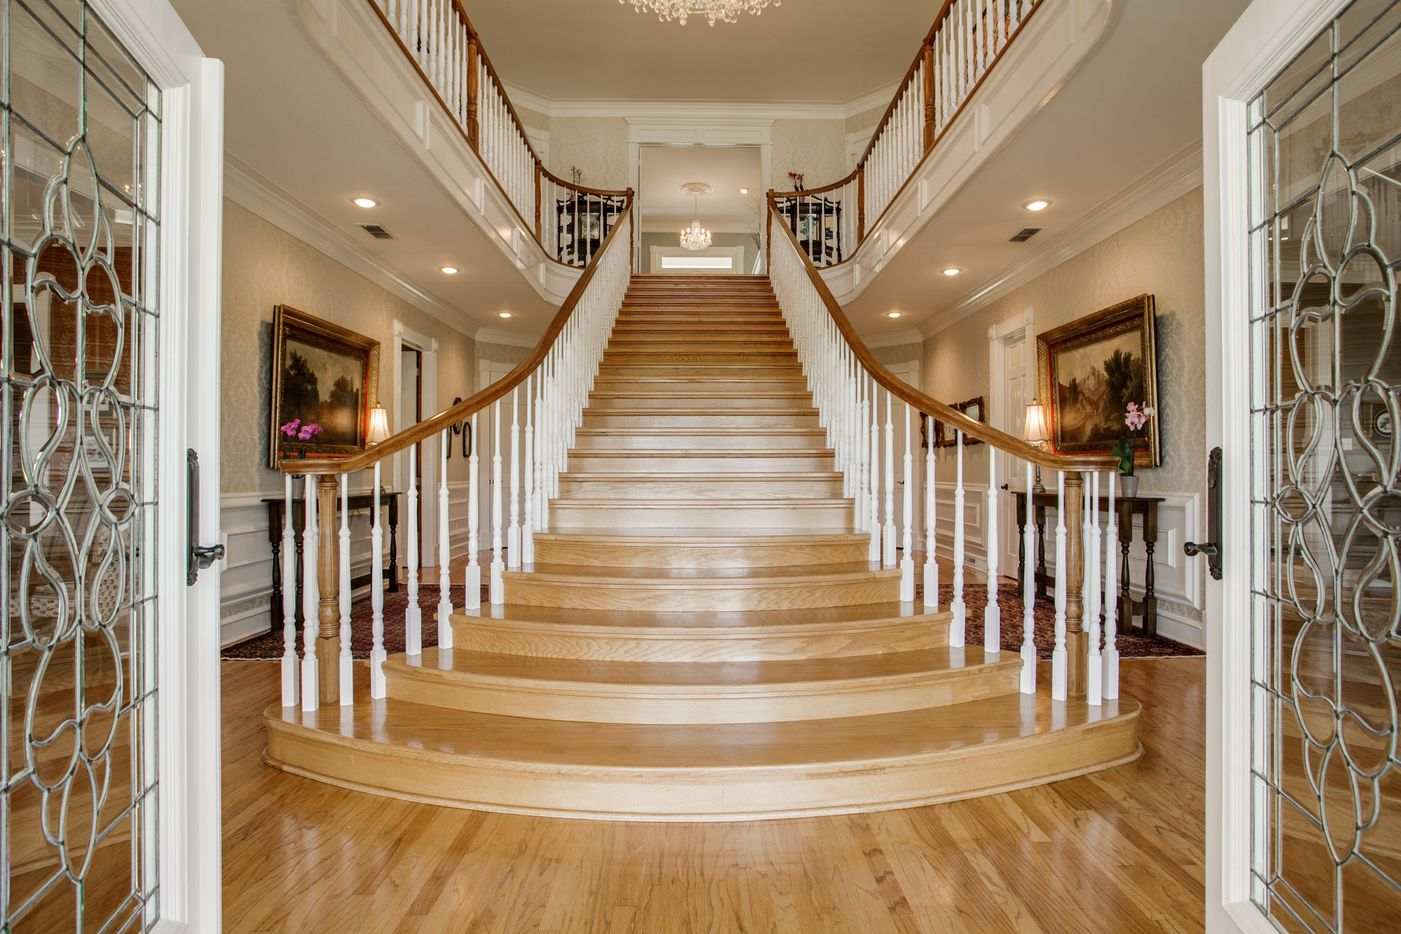 The entryway and grand staircase